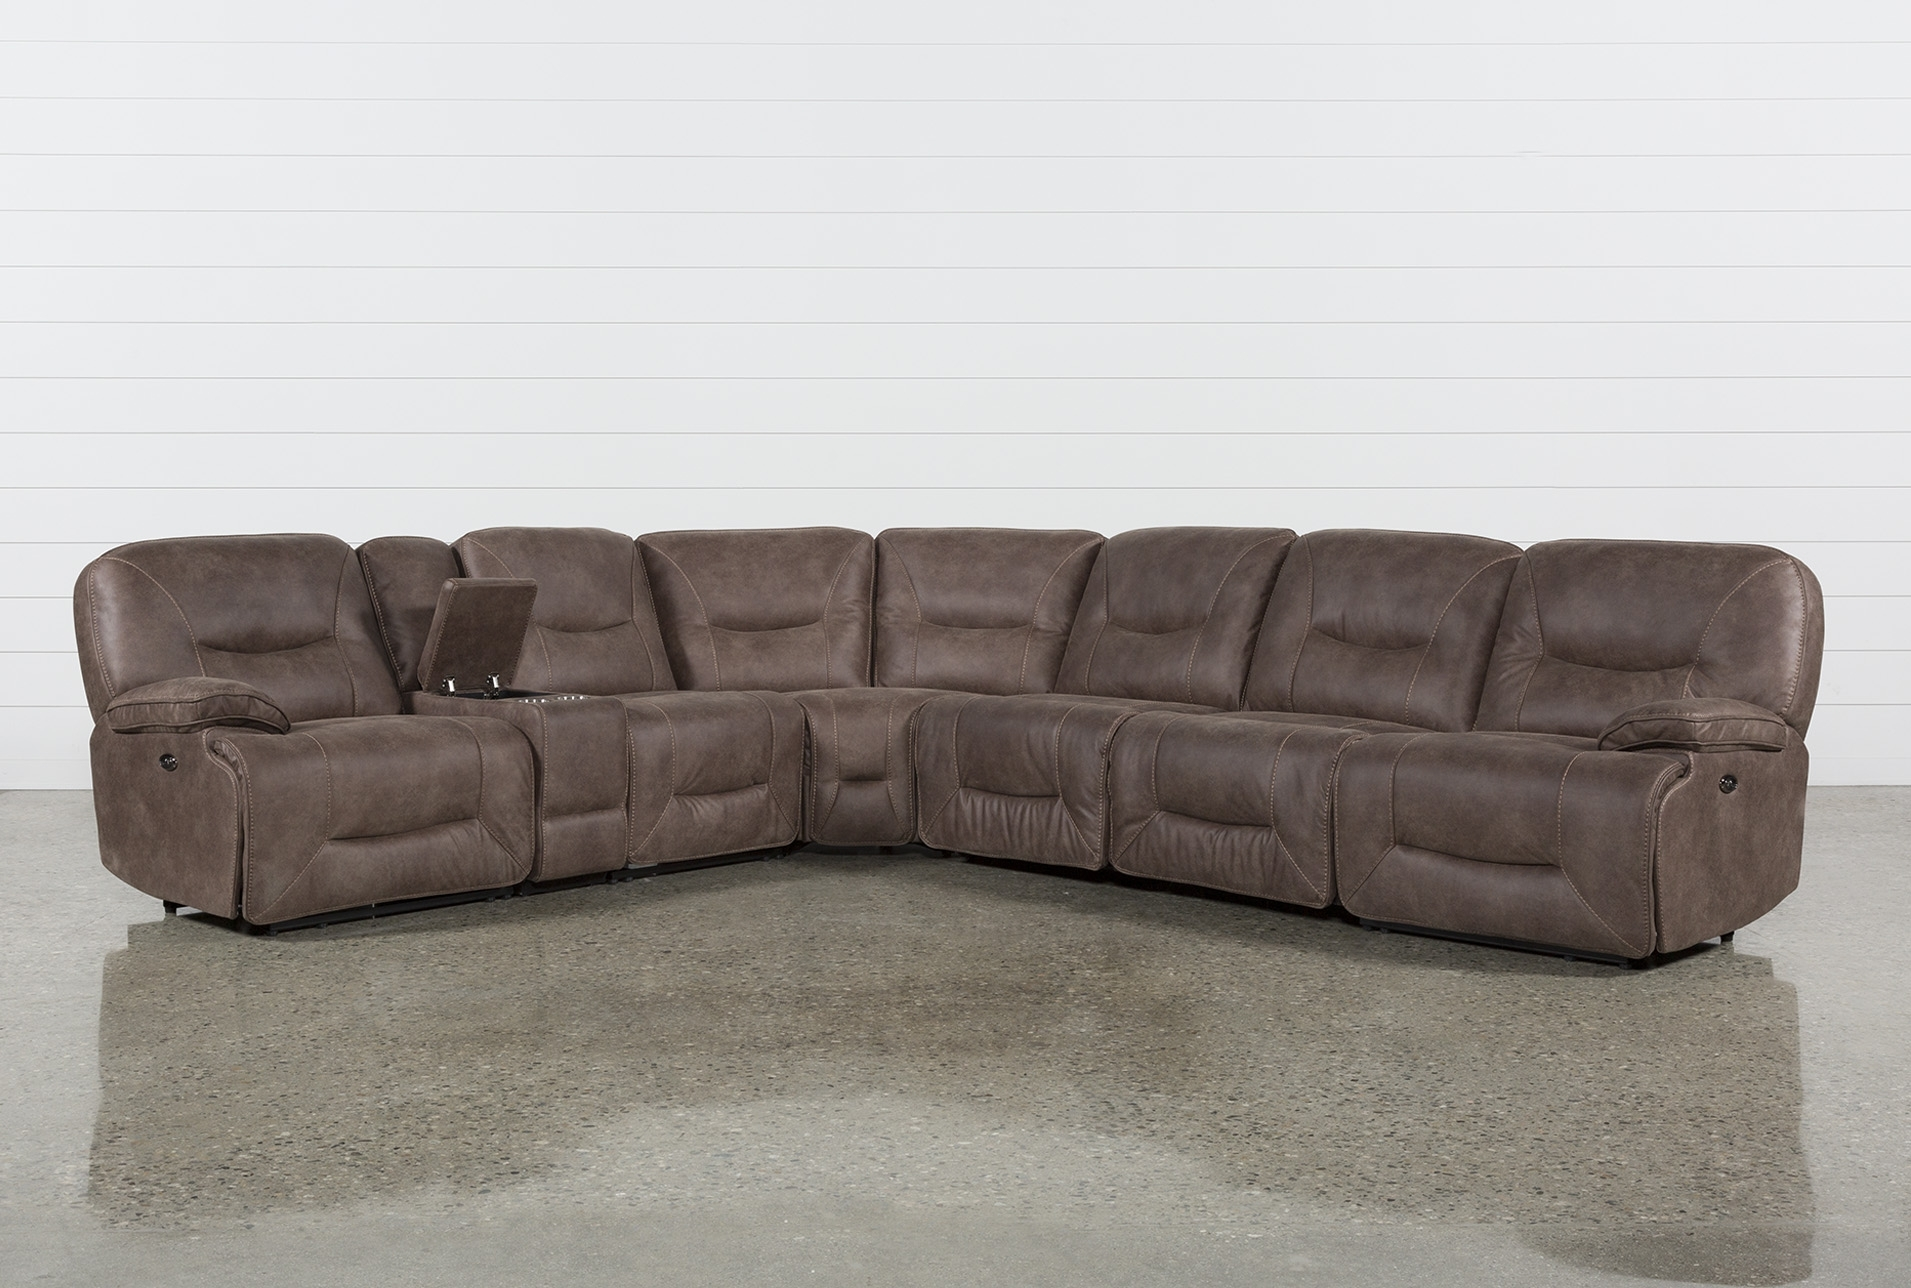 Jackson 6 Piece Power Reclining Sectional W/ Sleeper | Products inside Jackson 6 Piece Power Reclining Sectionals With  Sleeper (Image 7 of 30)